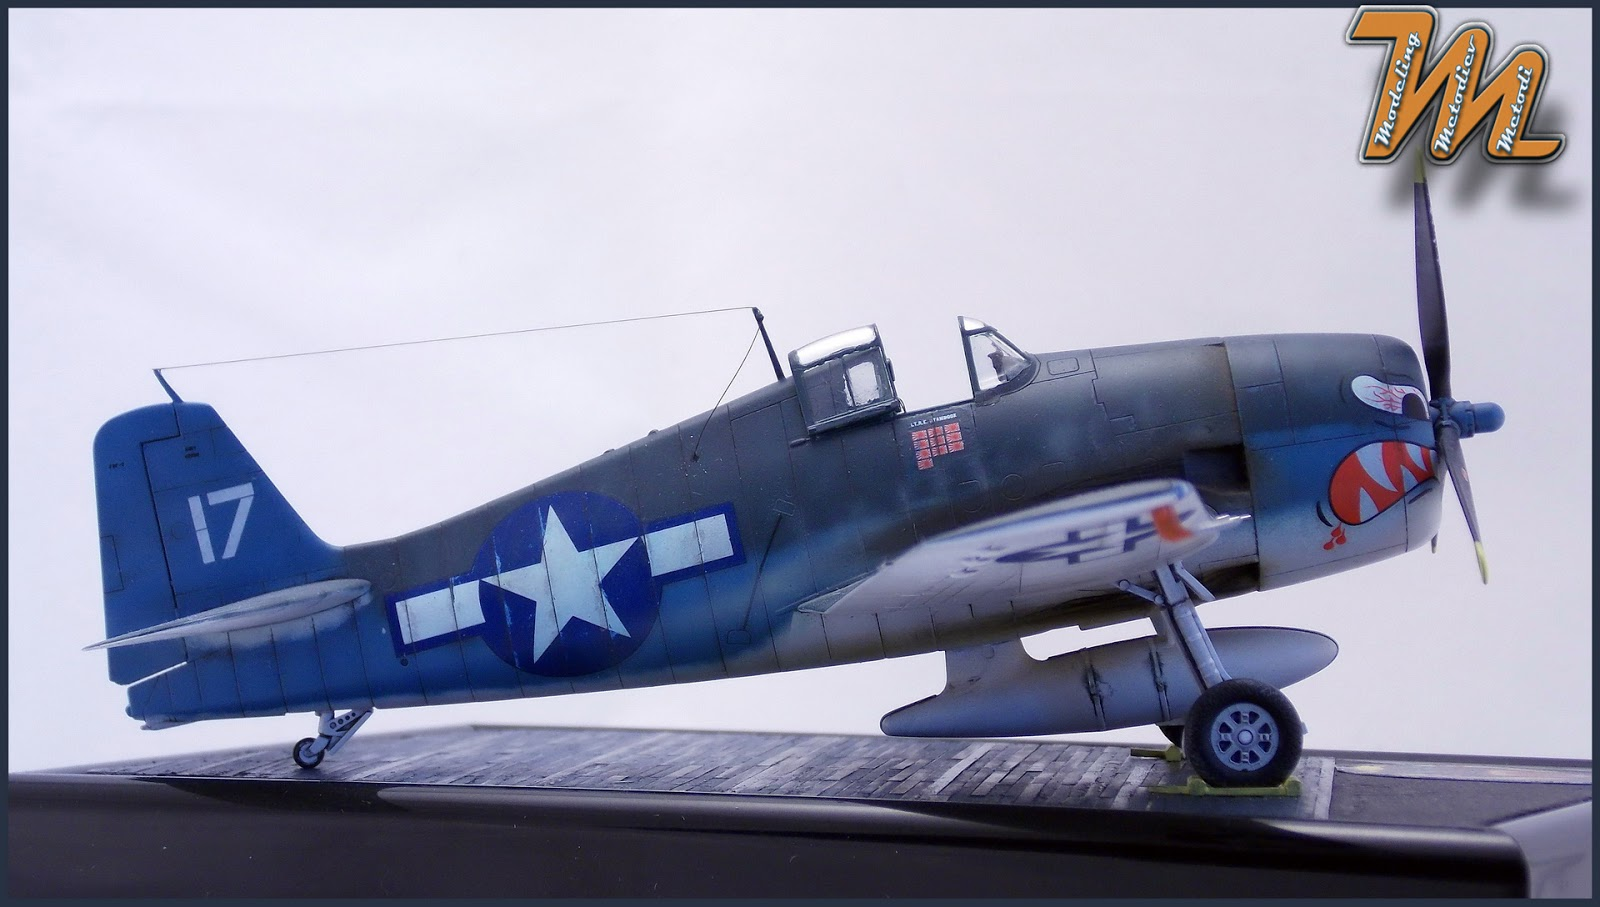 F6F-3, Hellcat, VF-27, aircraft scale model